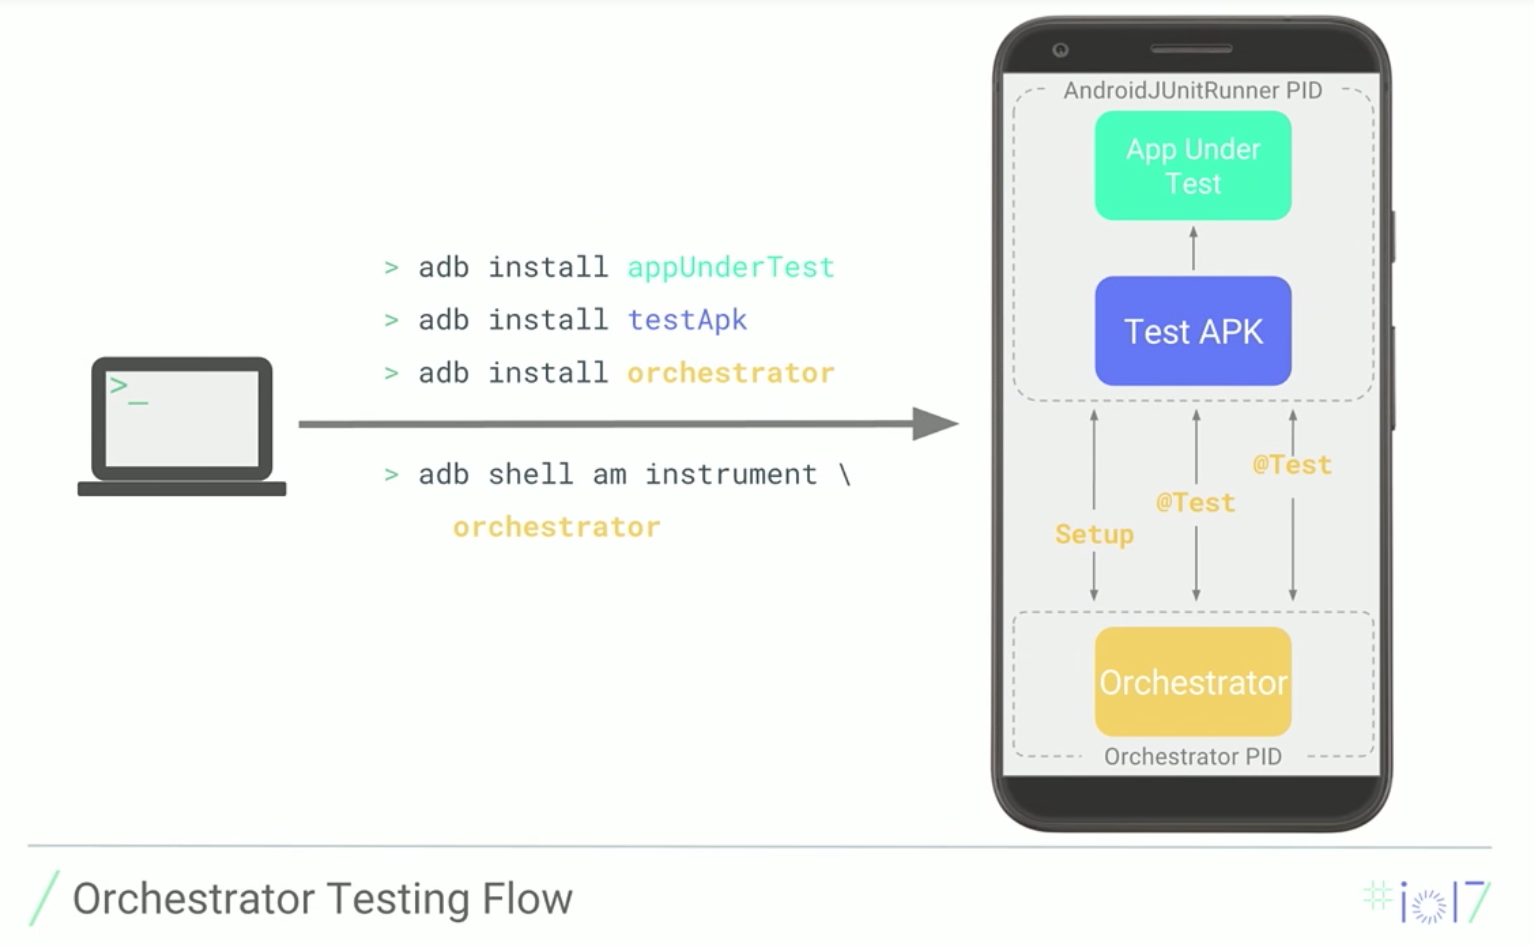 Orchestrator Testing Flow